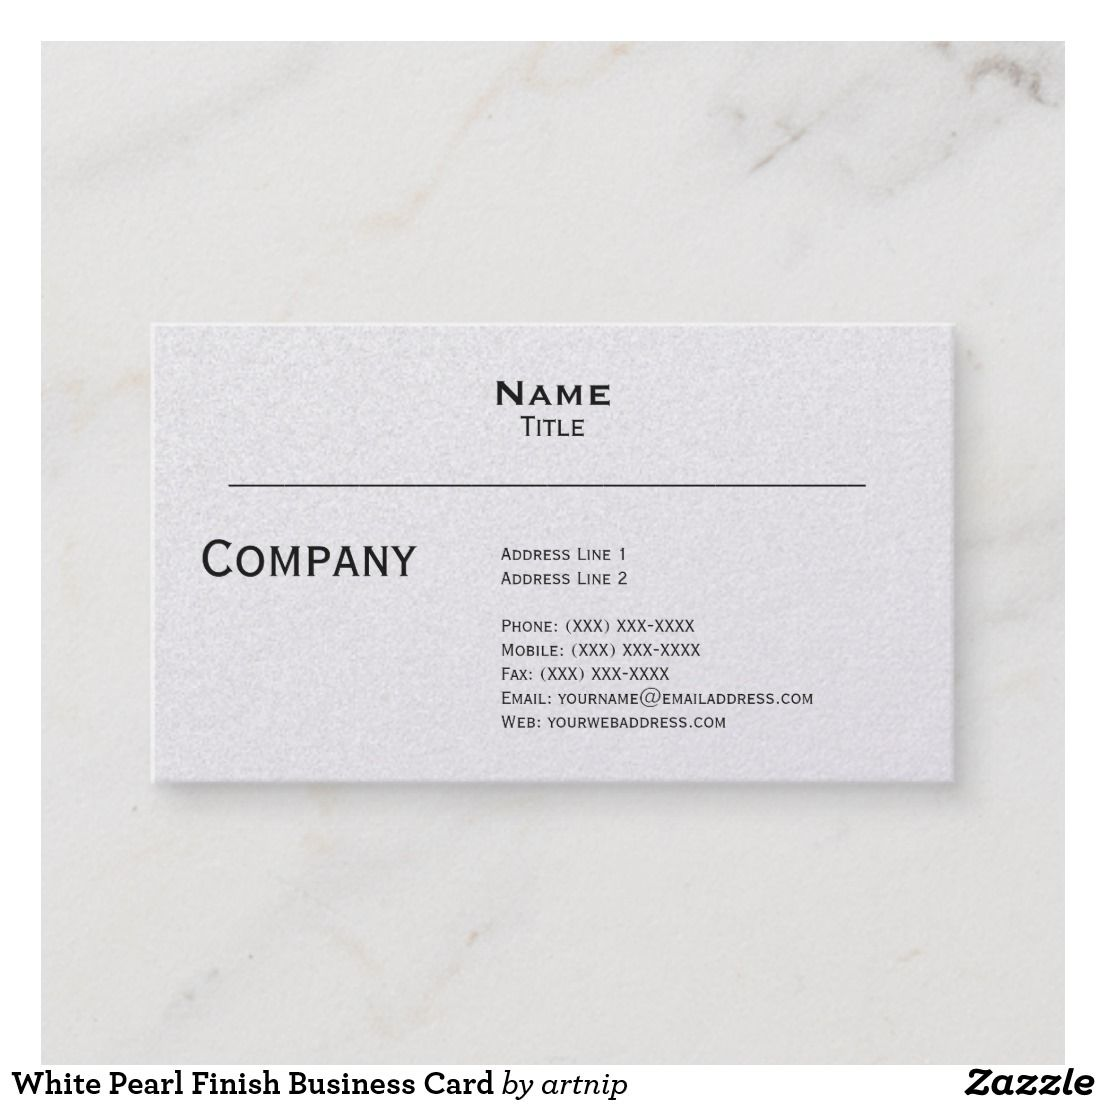 White Pearl Finish Business Card